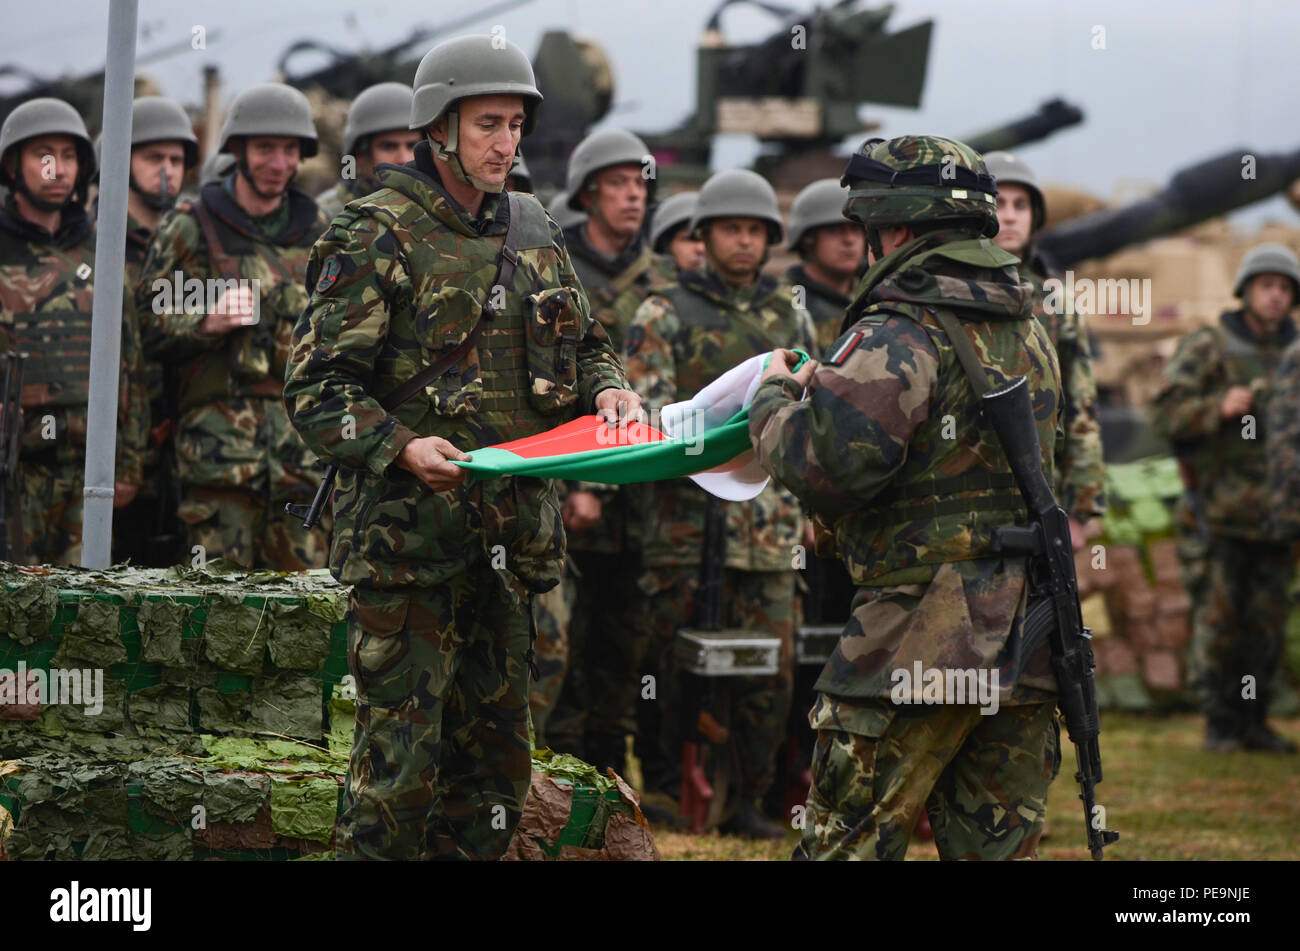 Bulgarian soldiers of 61st Mechanized Brigade fold the Bulgarian flag during the closing ceremony of Exercise Peace Sentinel at Novo Selo Training Center, Bulgaria, Nov. 24, 2015. (U.S. Army photo by Staff Sgt. Steven M. Colvin/Released) - Stock Image